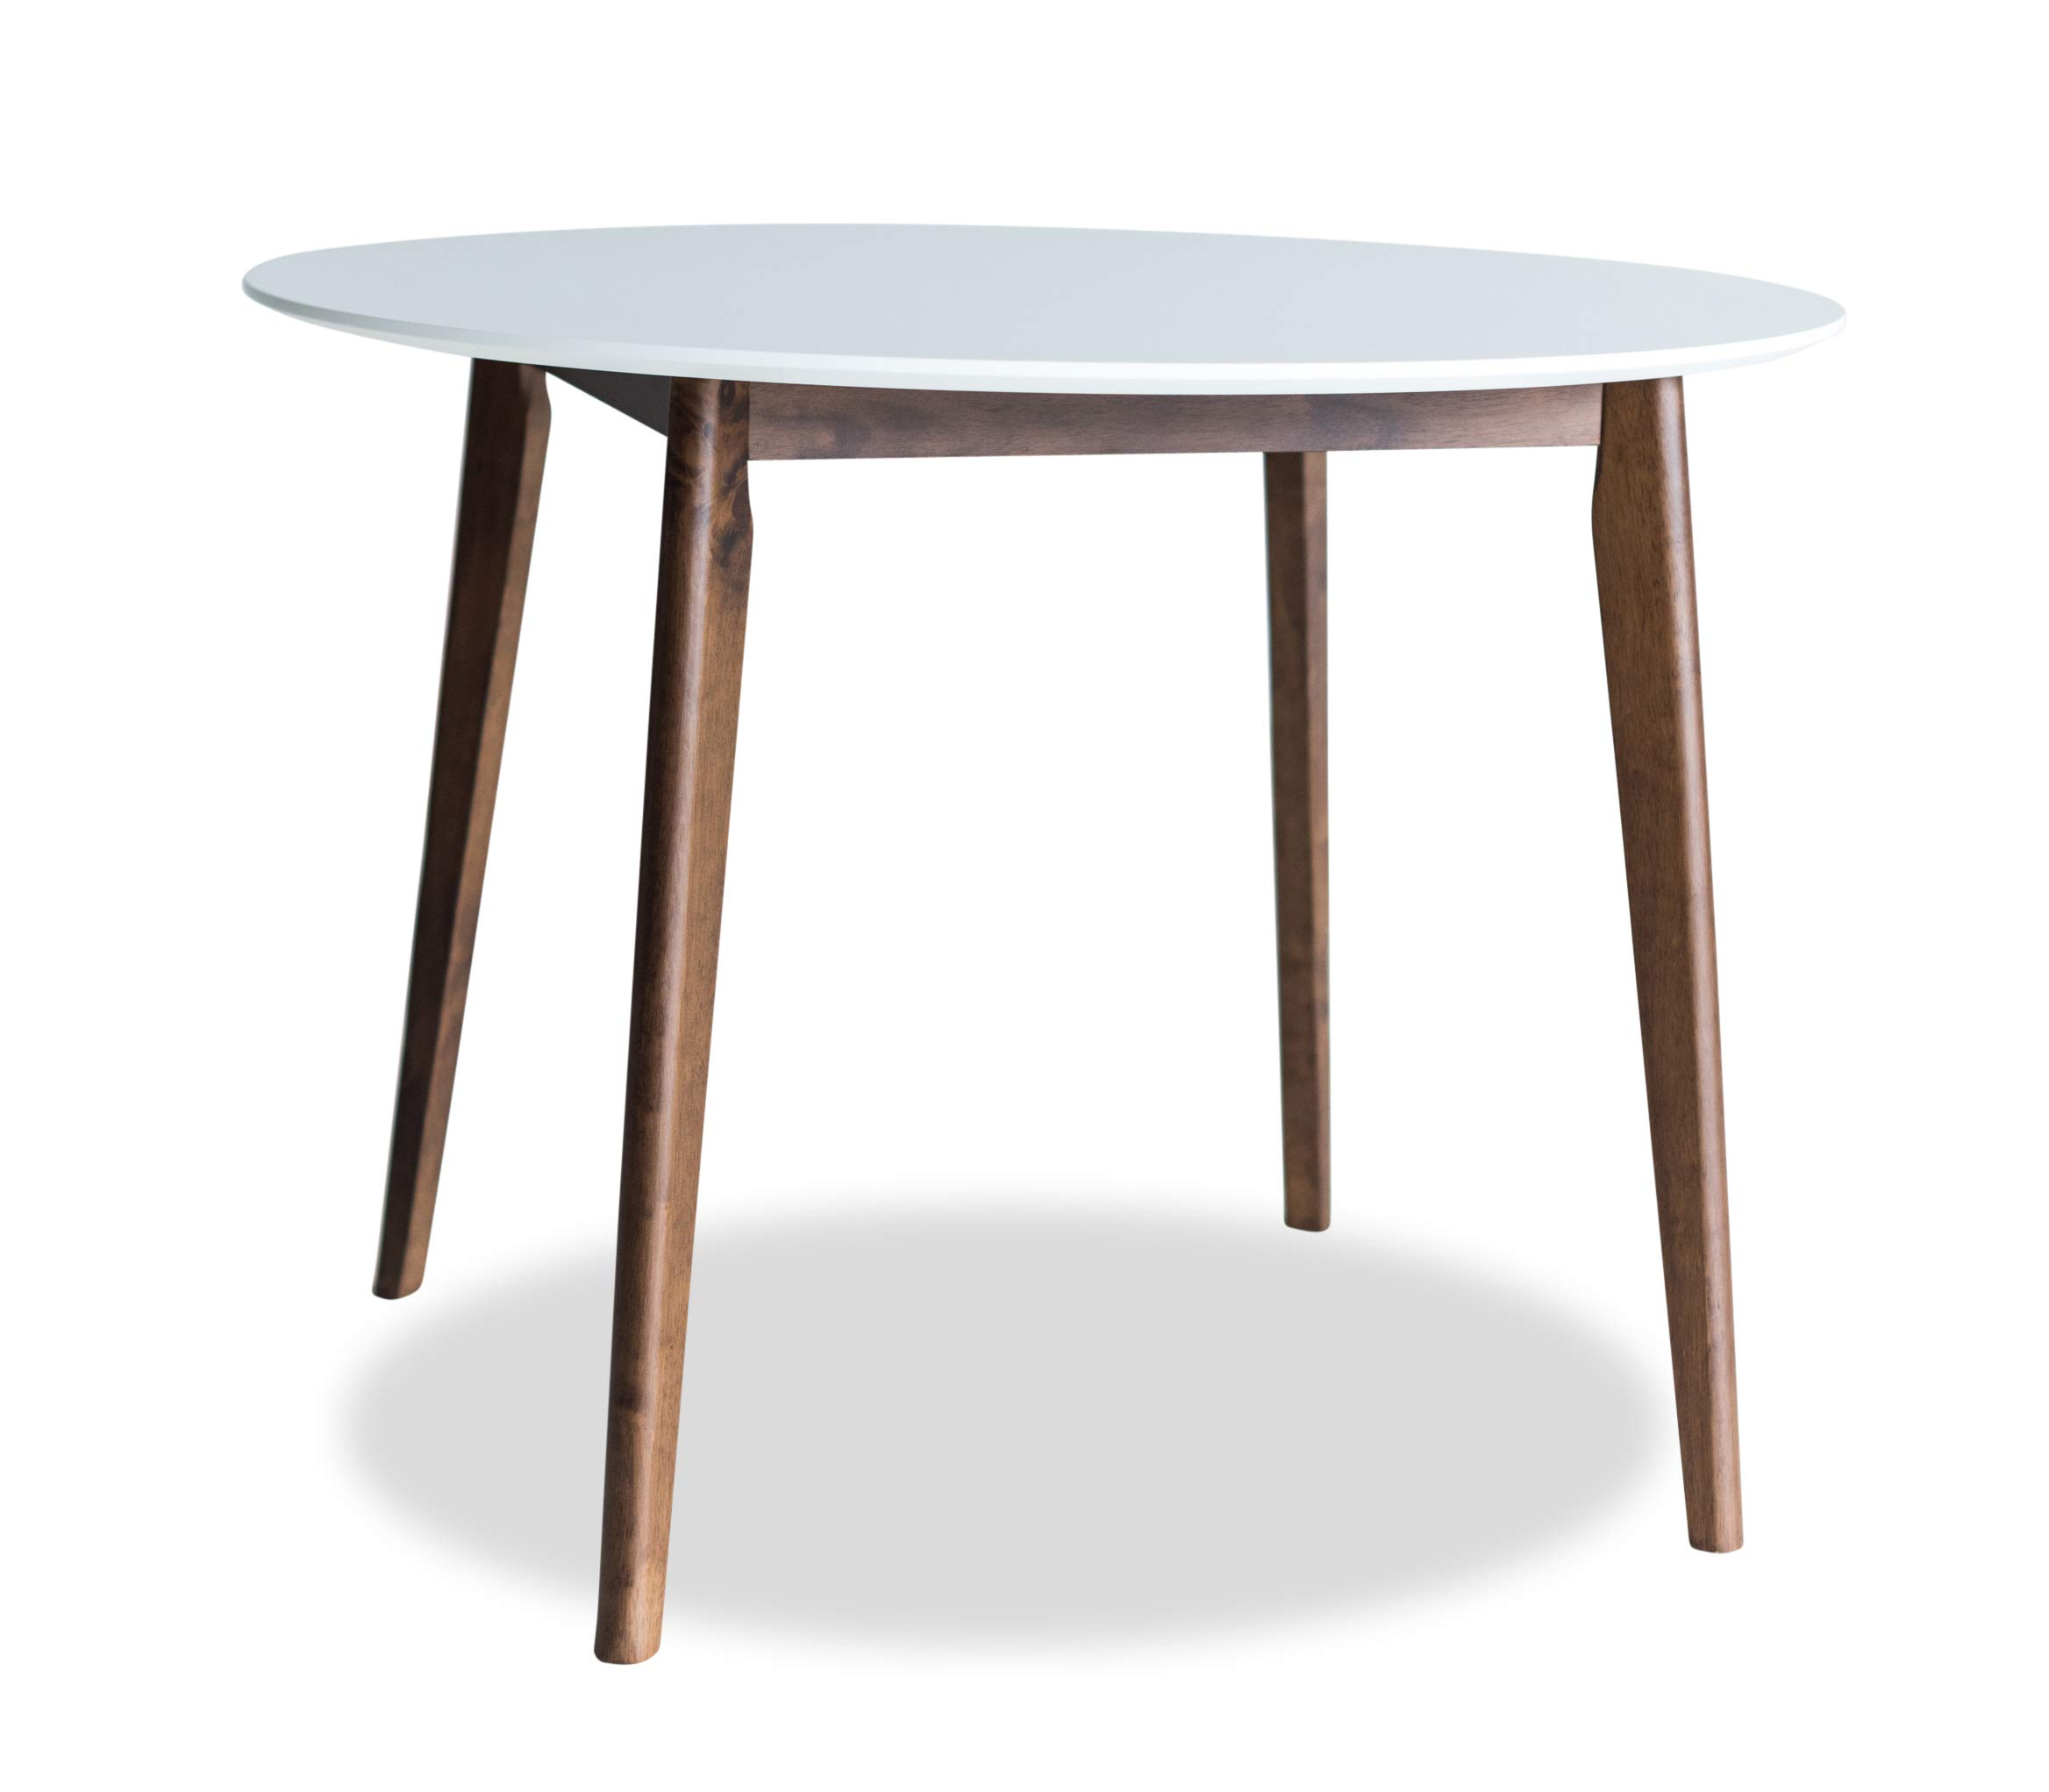 Edloe Finch Dakota Mid-Century Modern 5 Piece Round Dining Table Set for 4, White Top by Edloe Finch (Image #8)